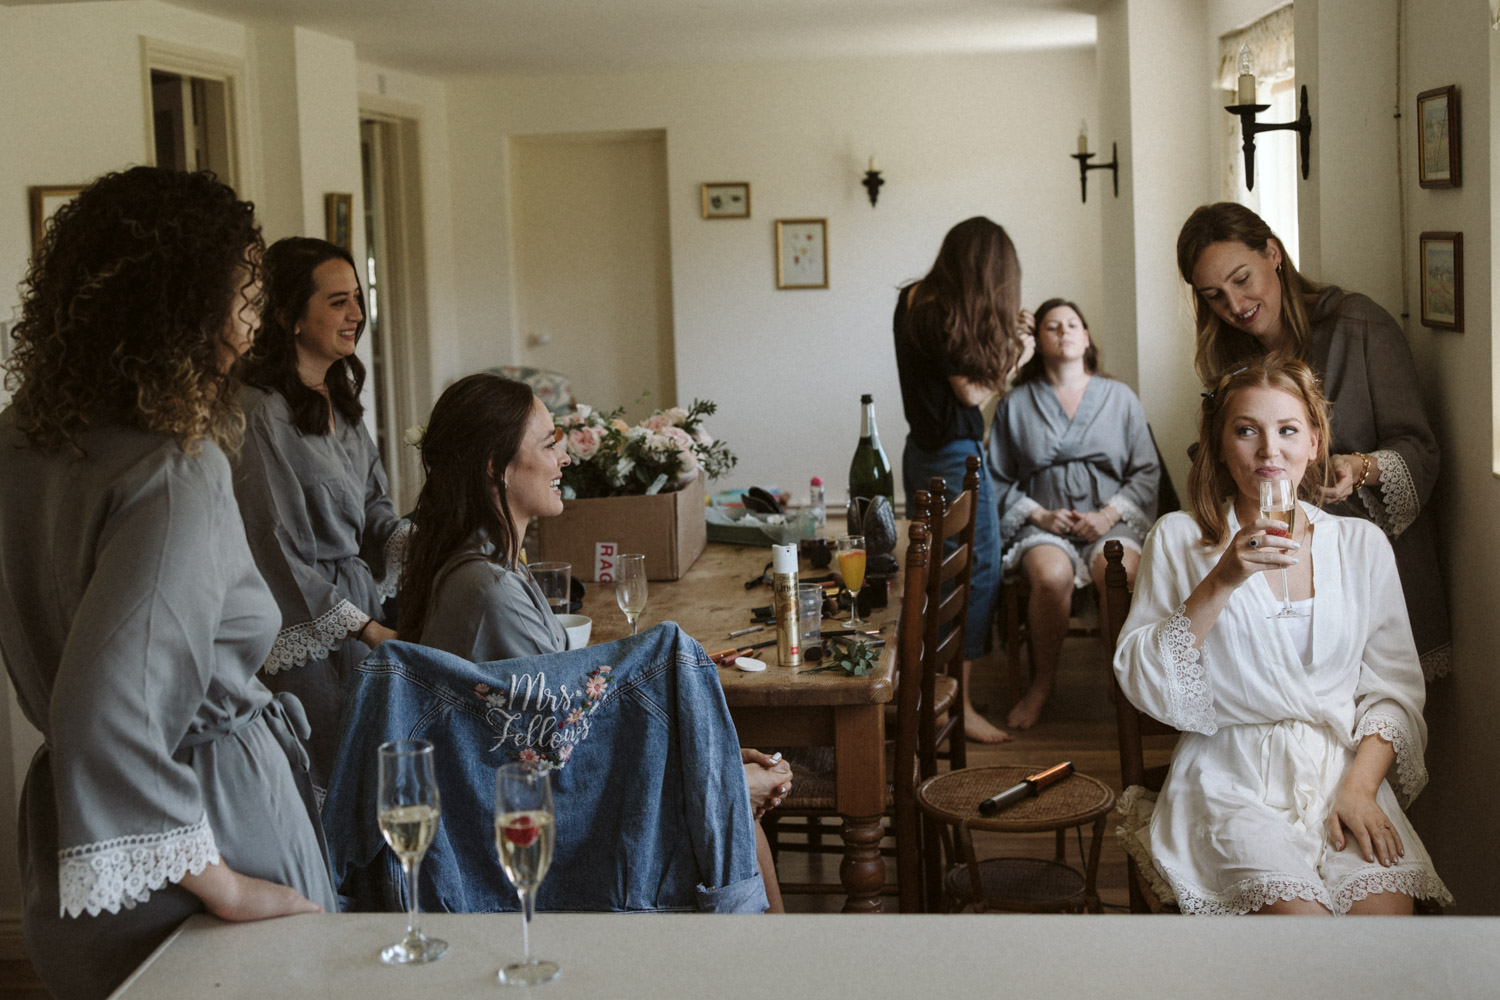 The bride and bridesmaids drinking and laughing while having their hair styled